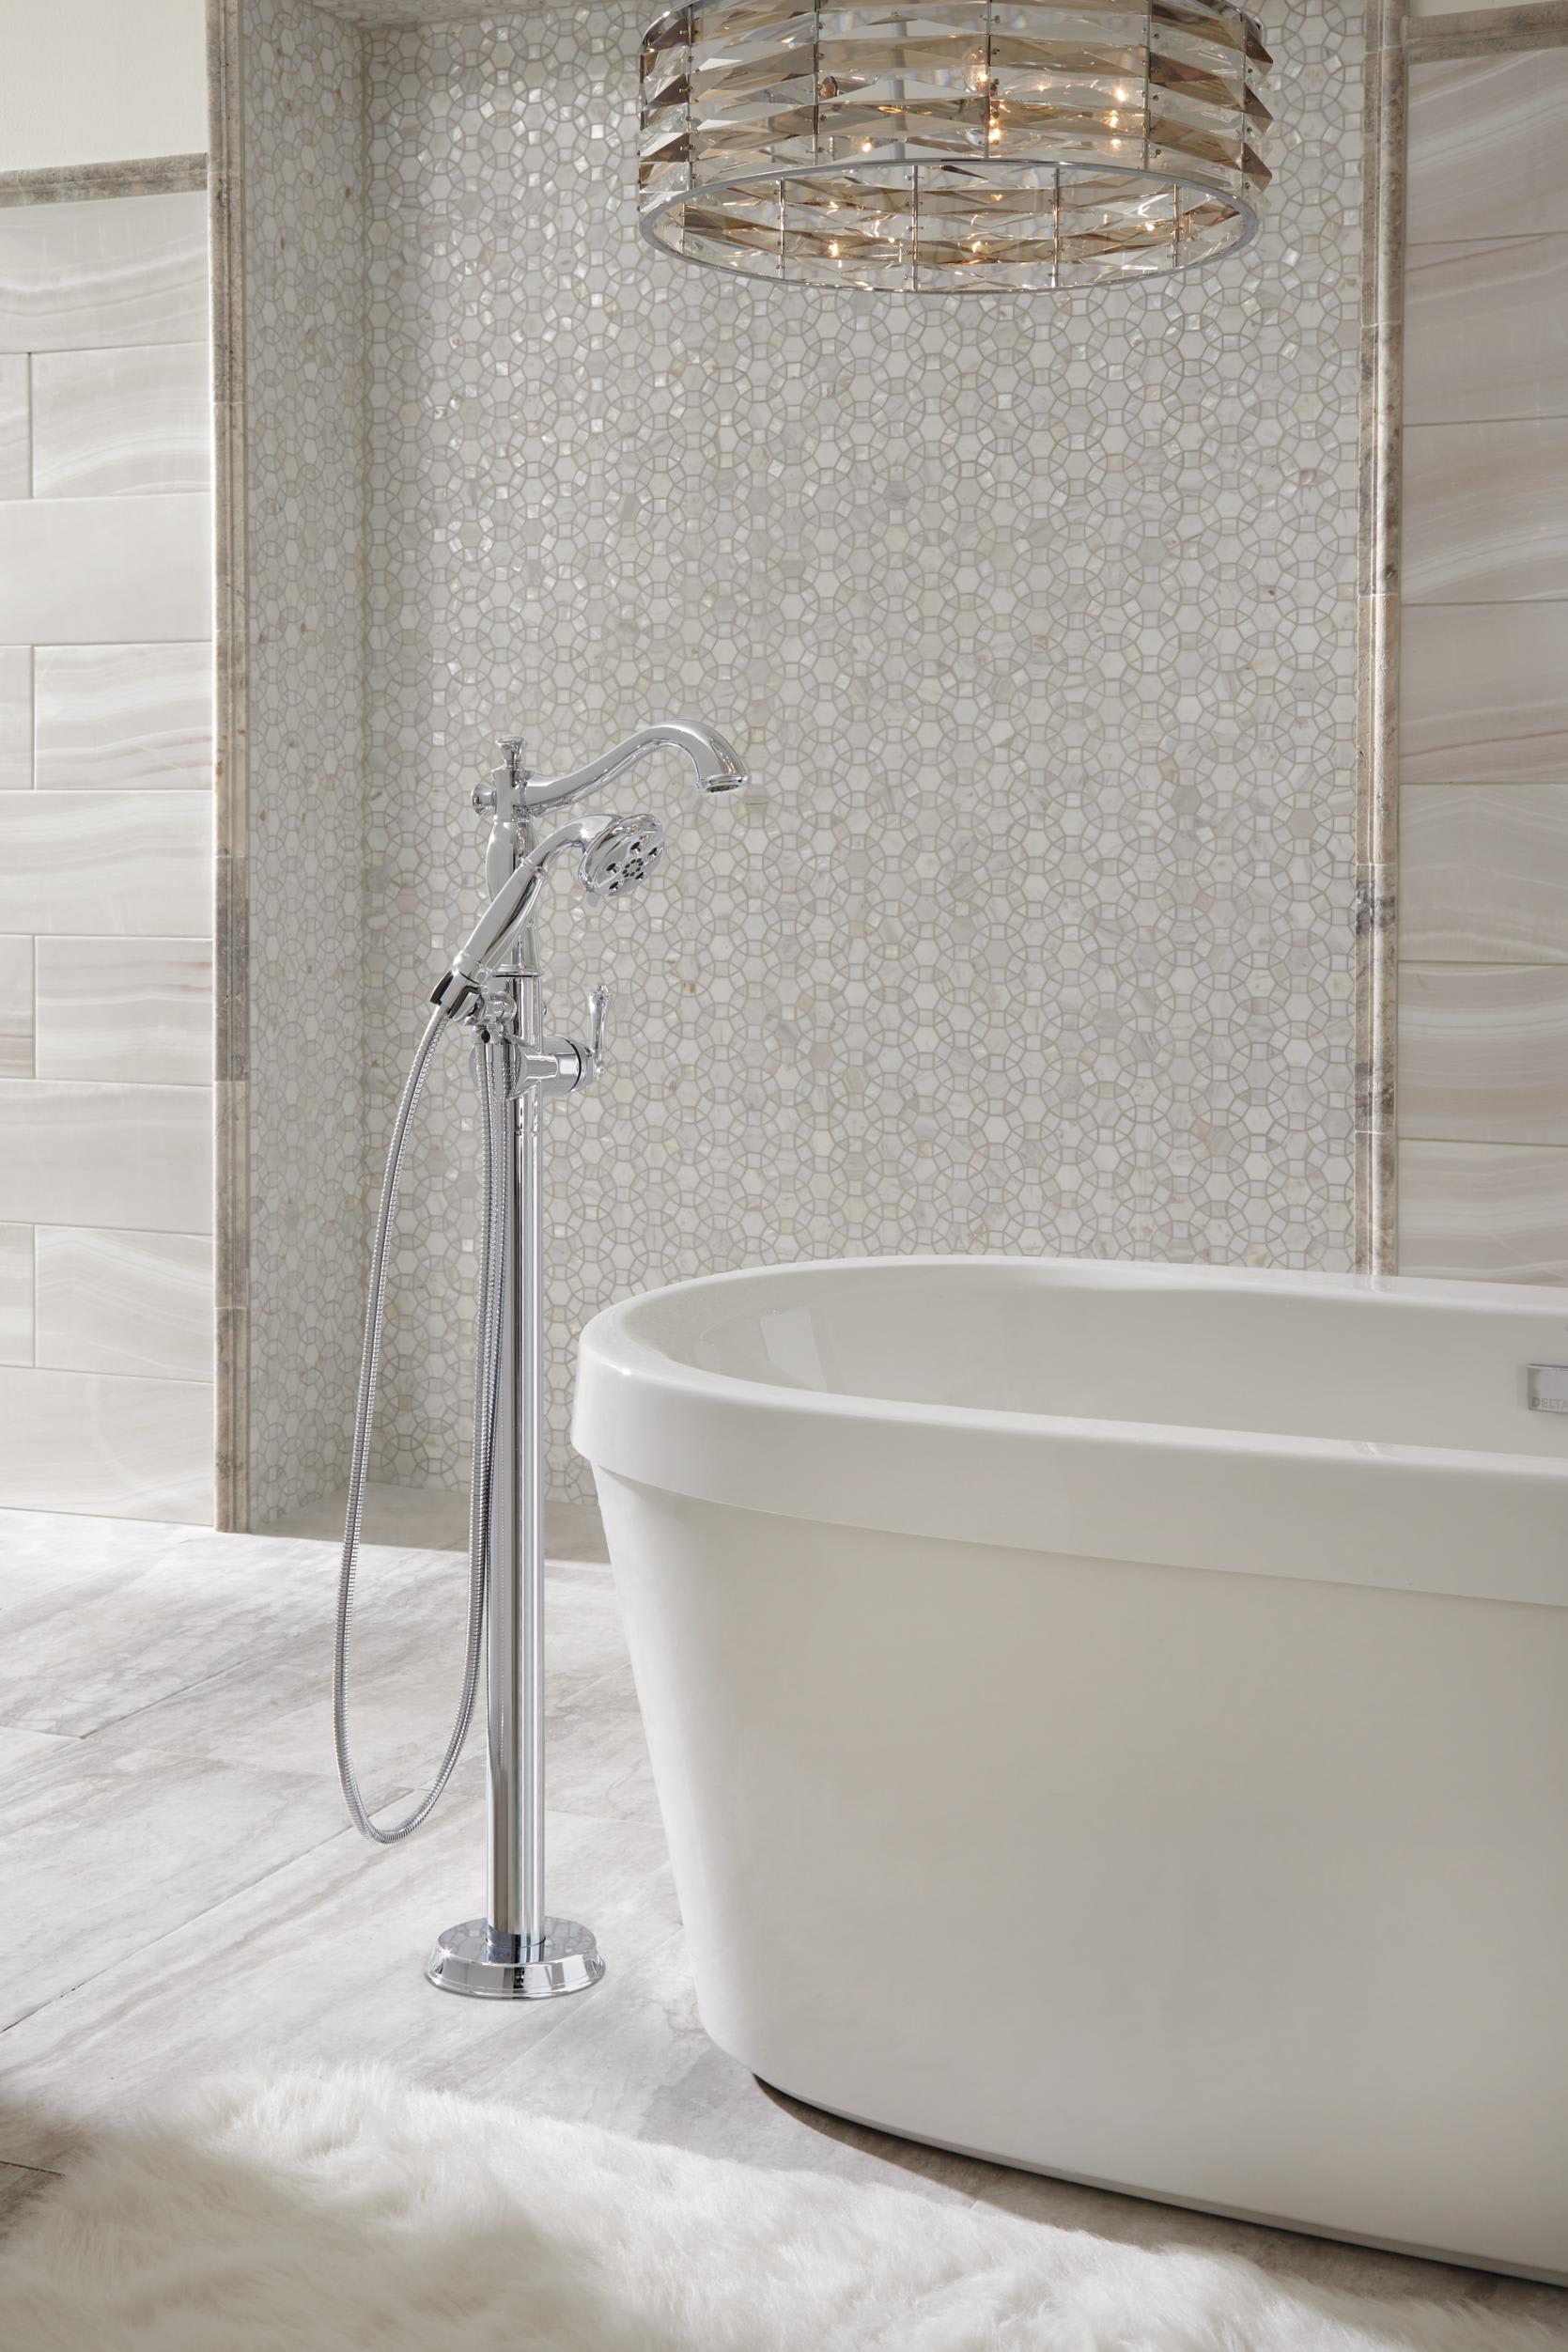 mixer mounted floor en from with images product taps ambient b cocoon bath mono filler hand spout tub shower